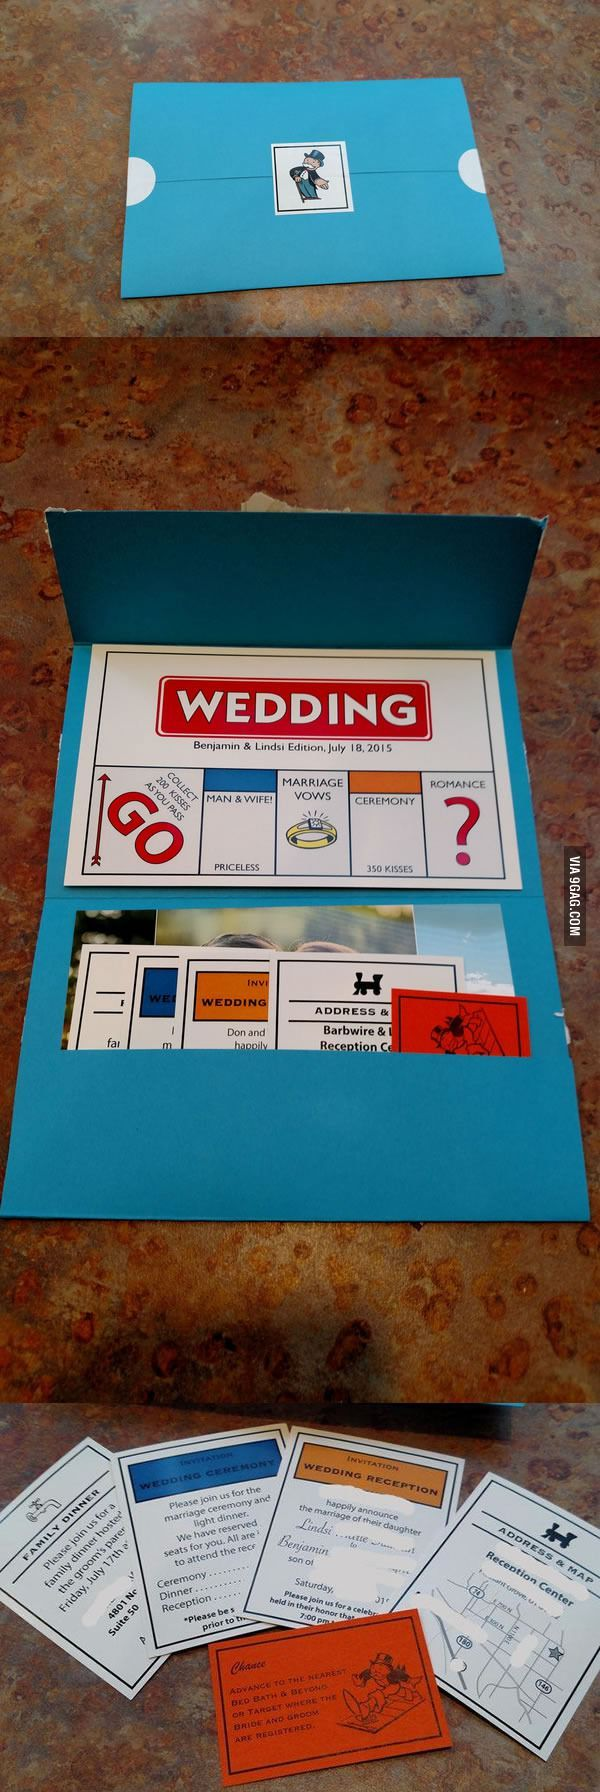 how to make film canister wedding invitations%0A Invitations of a game themed wedding